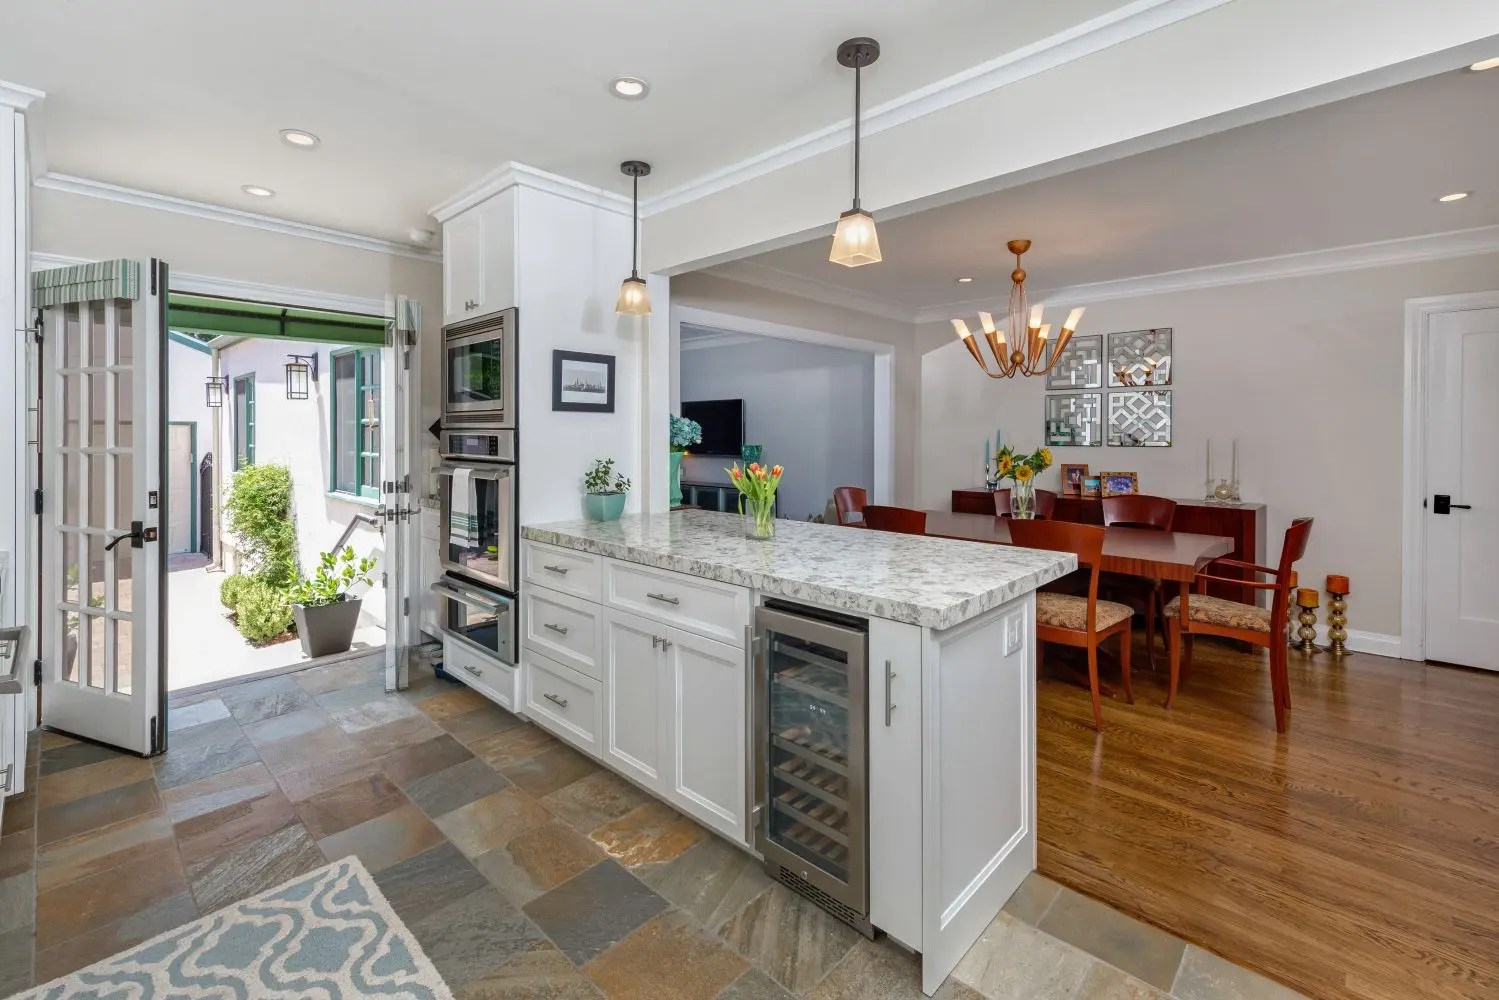 Kitchen peninsula with ovens and wine cooler.